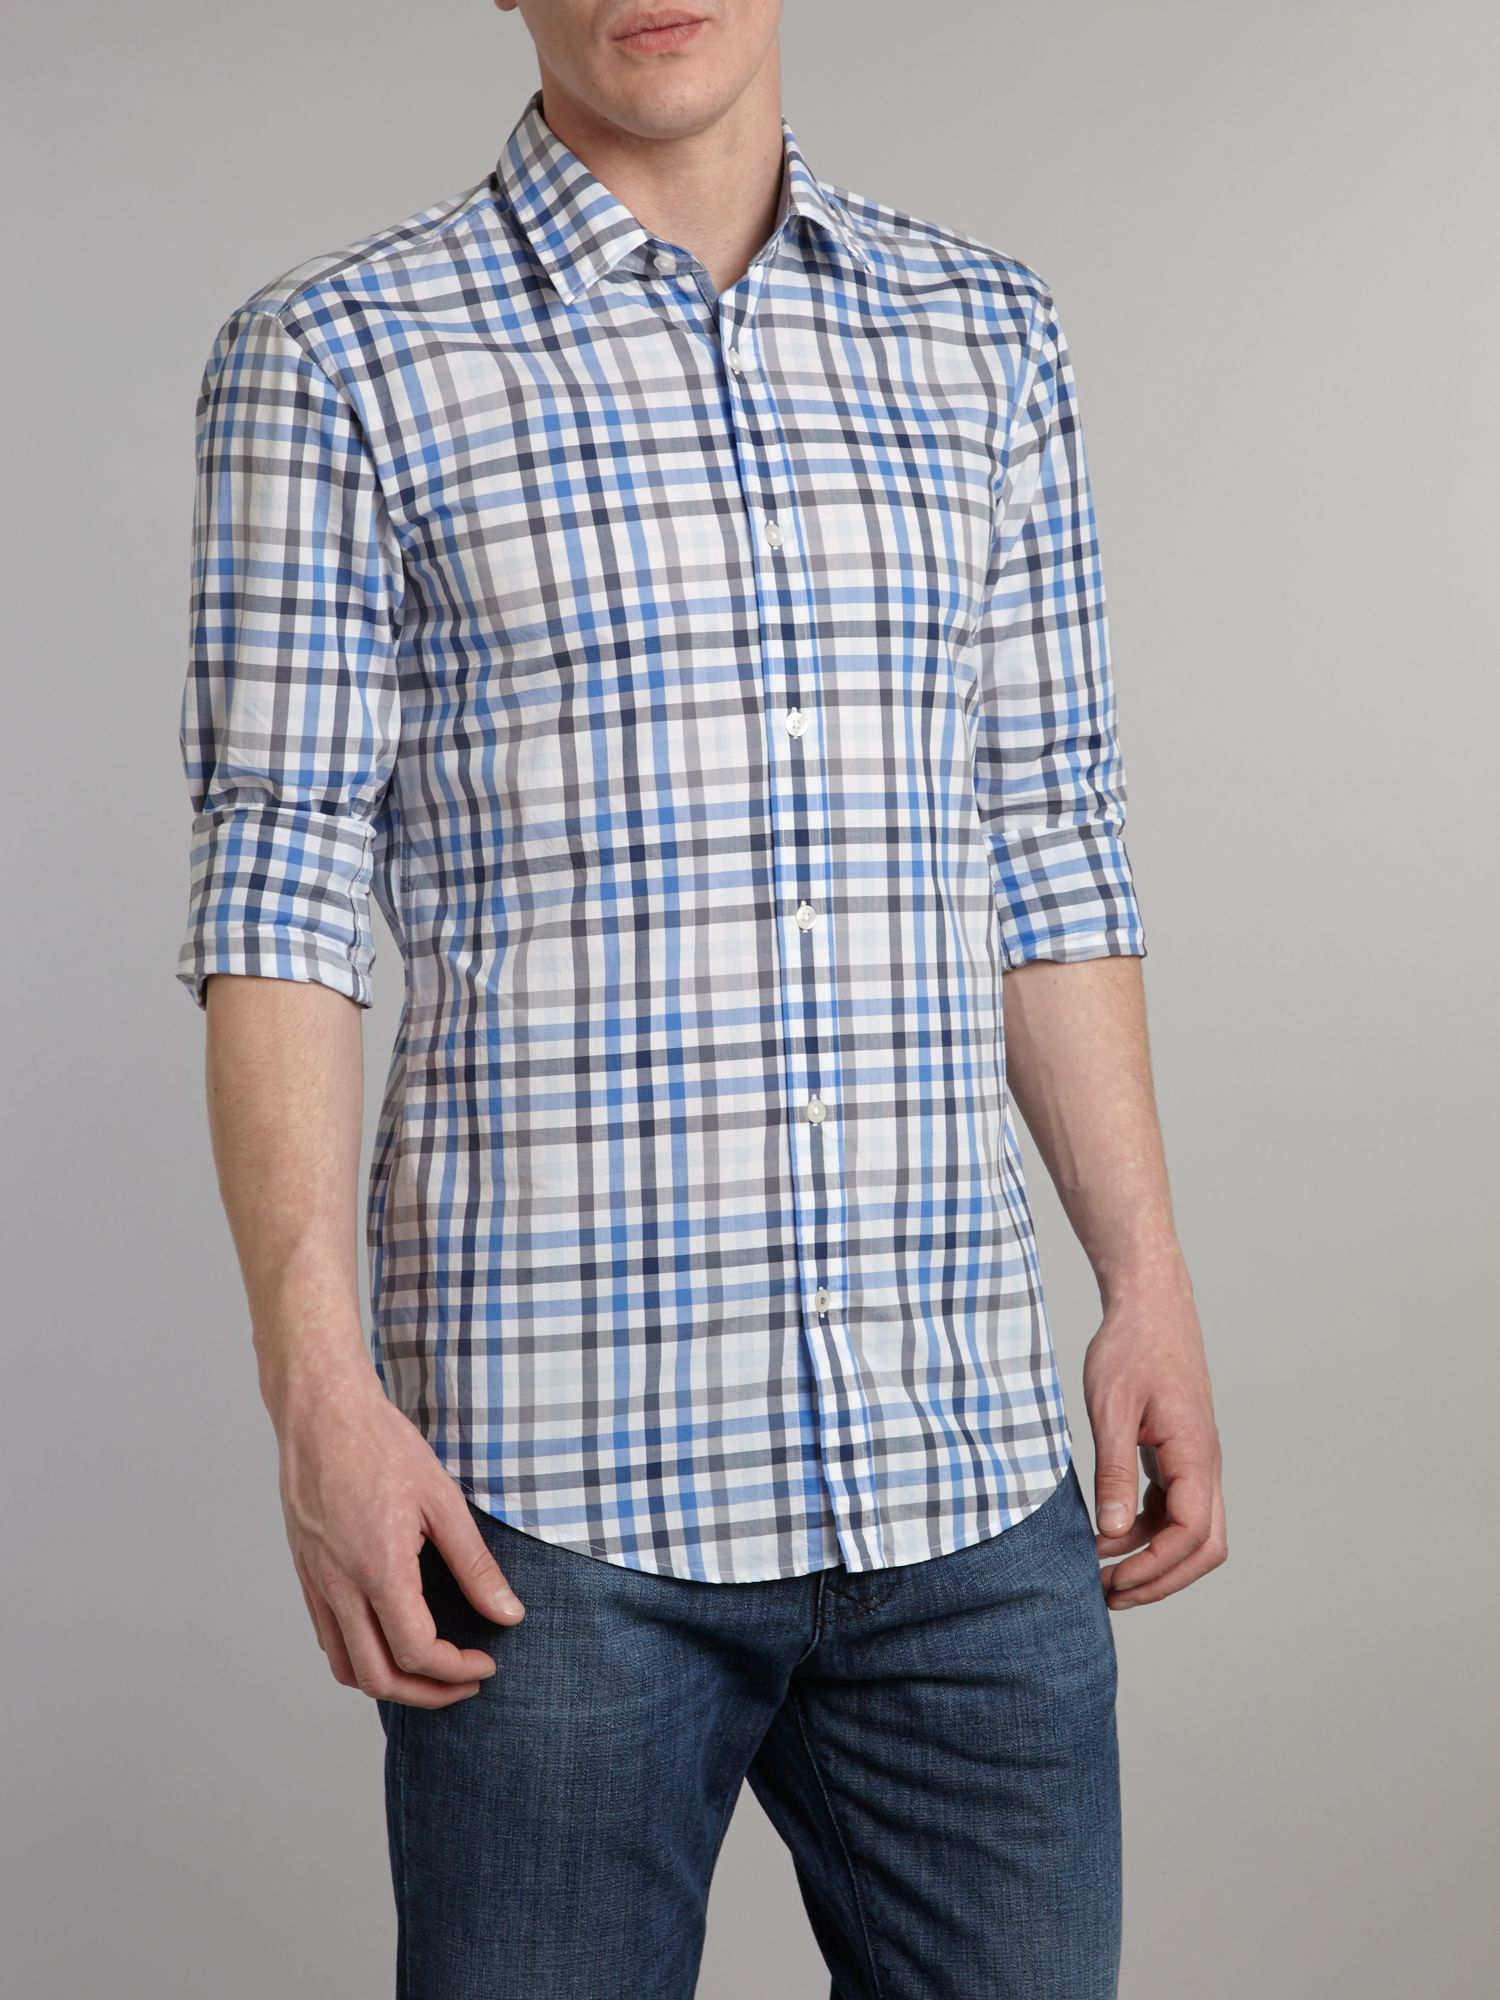 Large gingham checked shirt